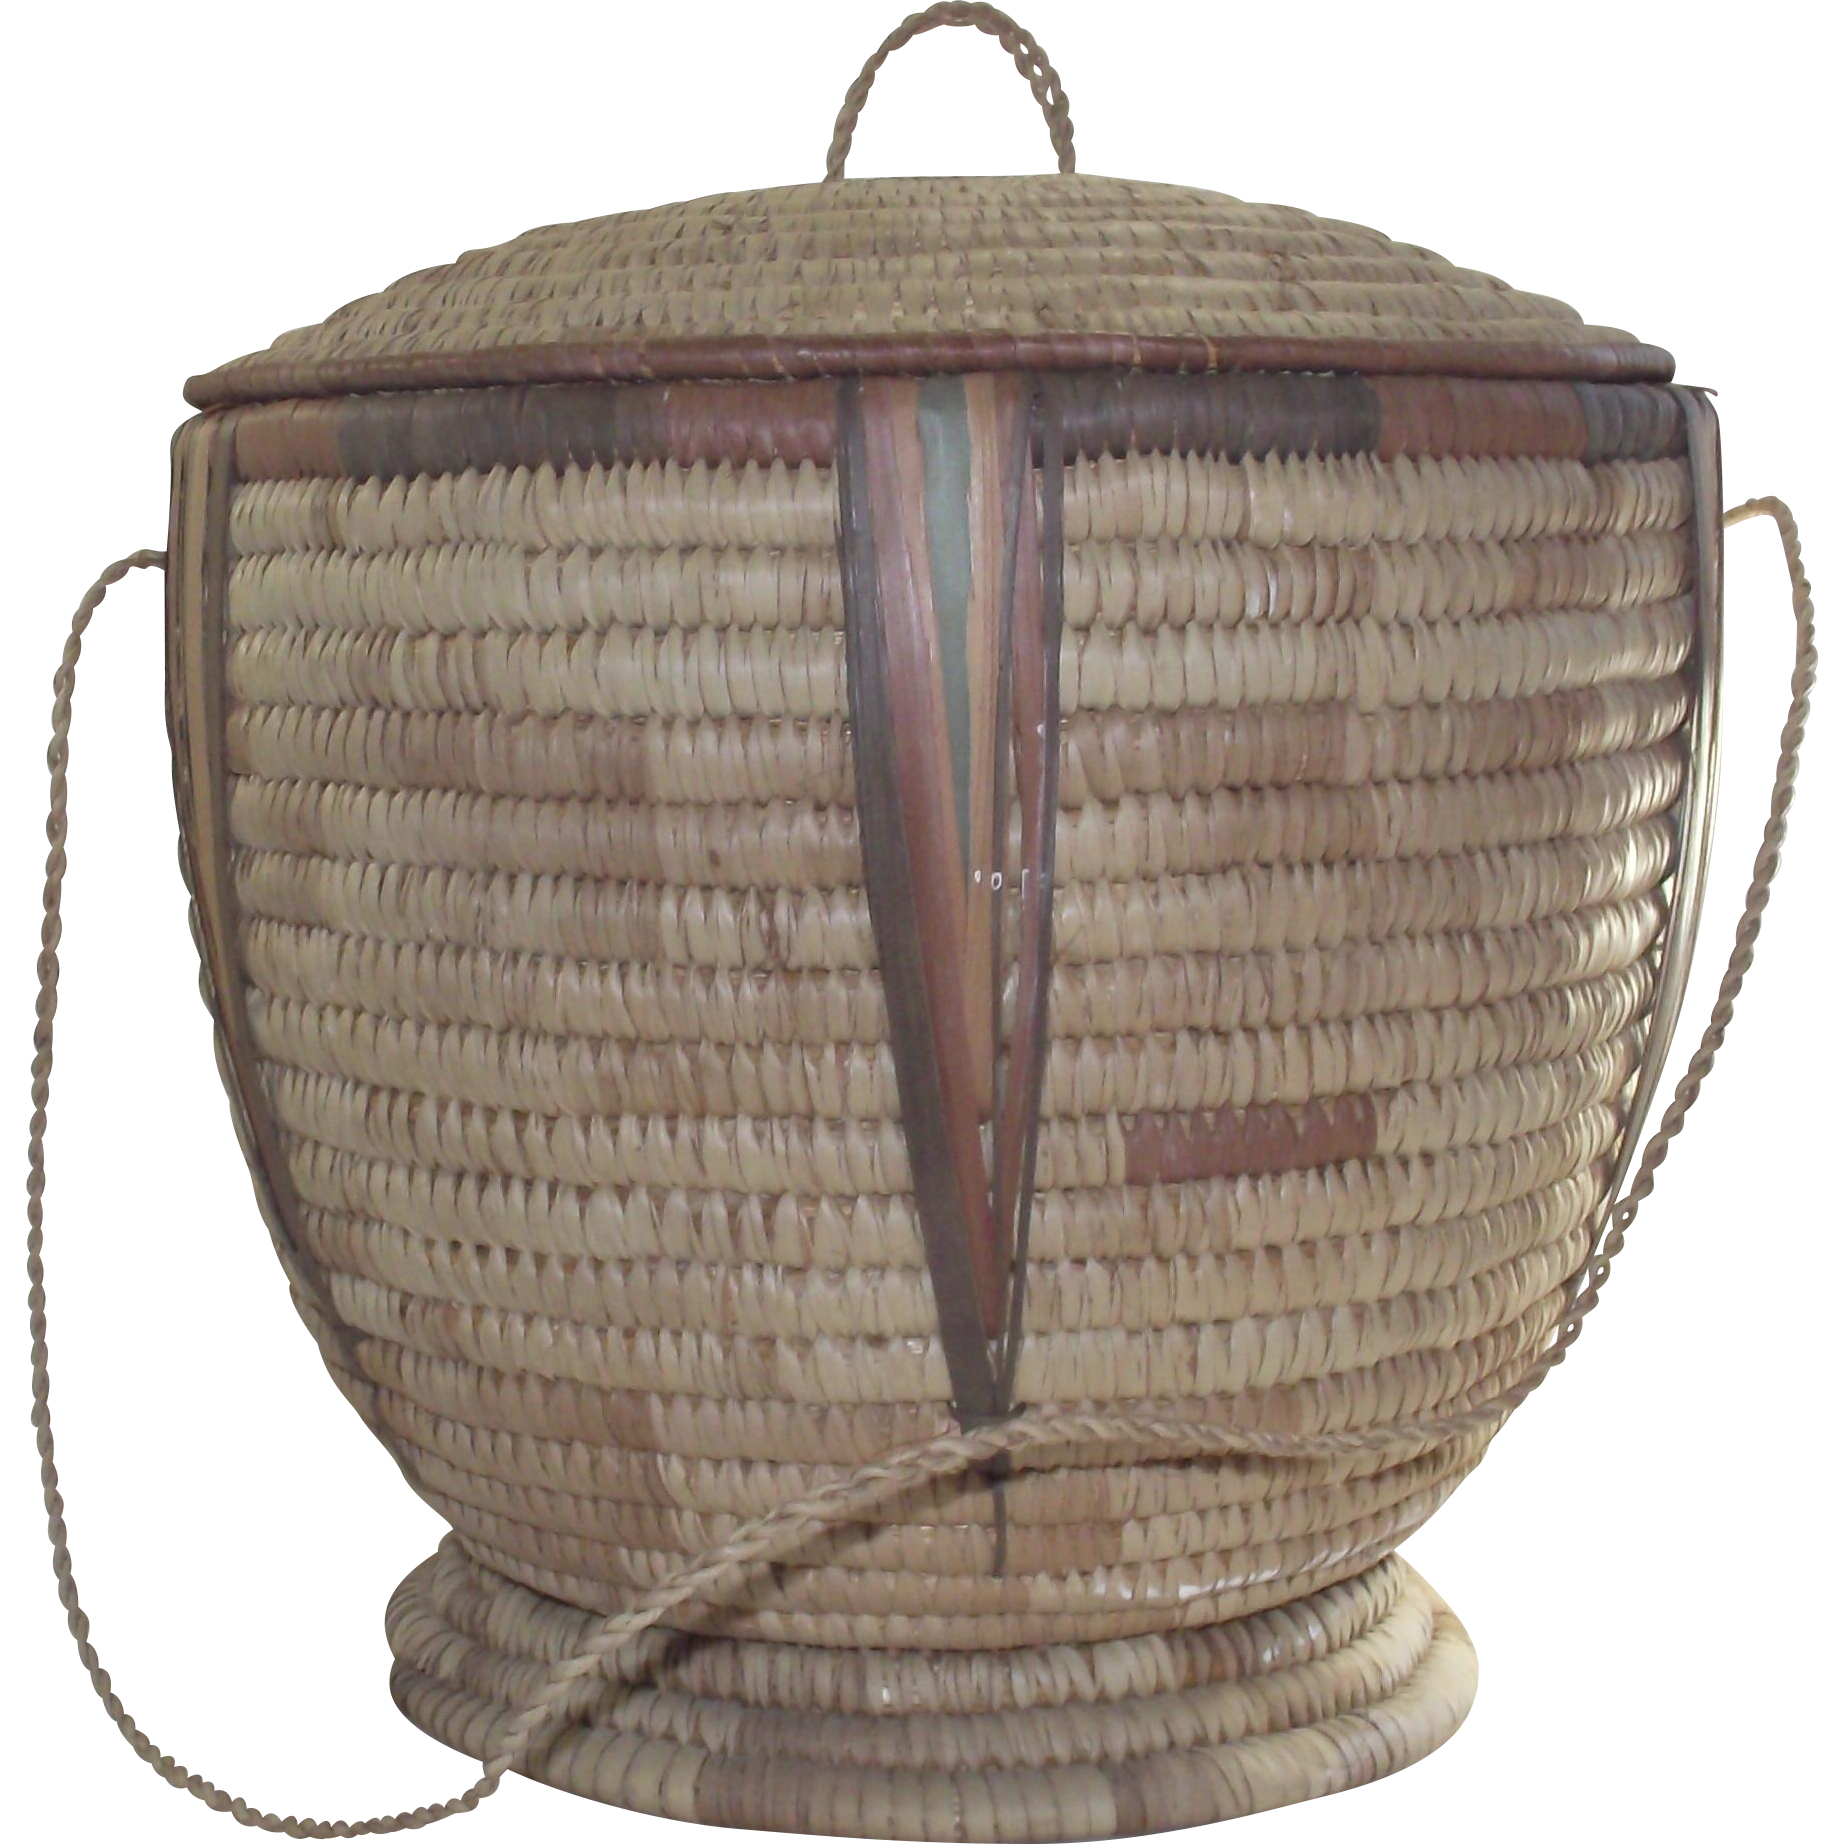 African Baskets: Hand Woven African Basket With Lid From Botswana Africa